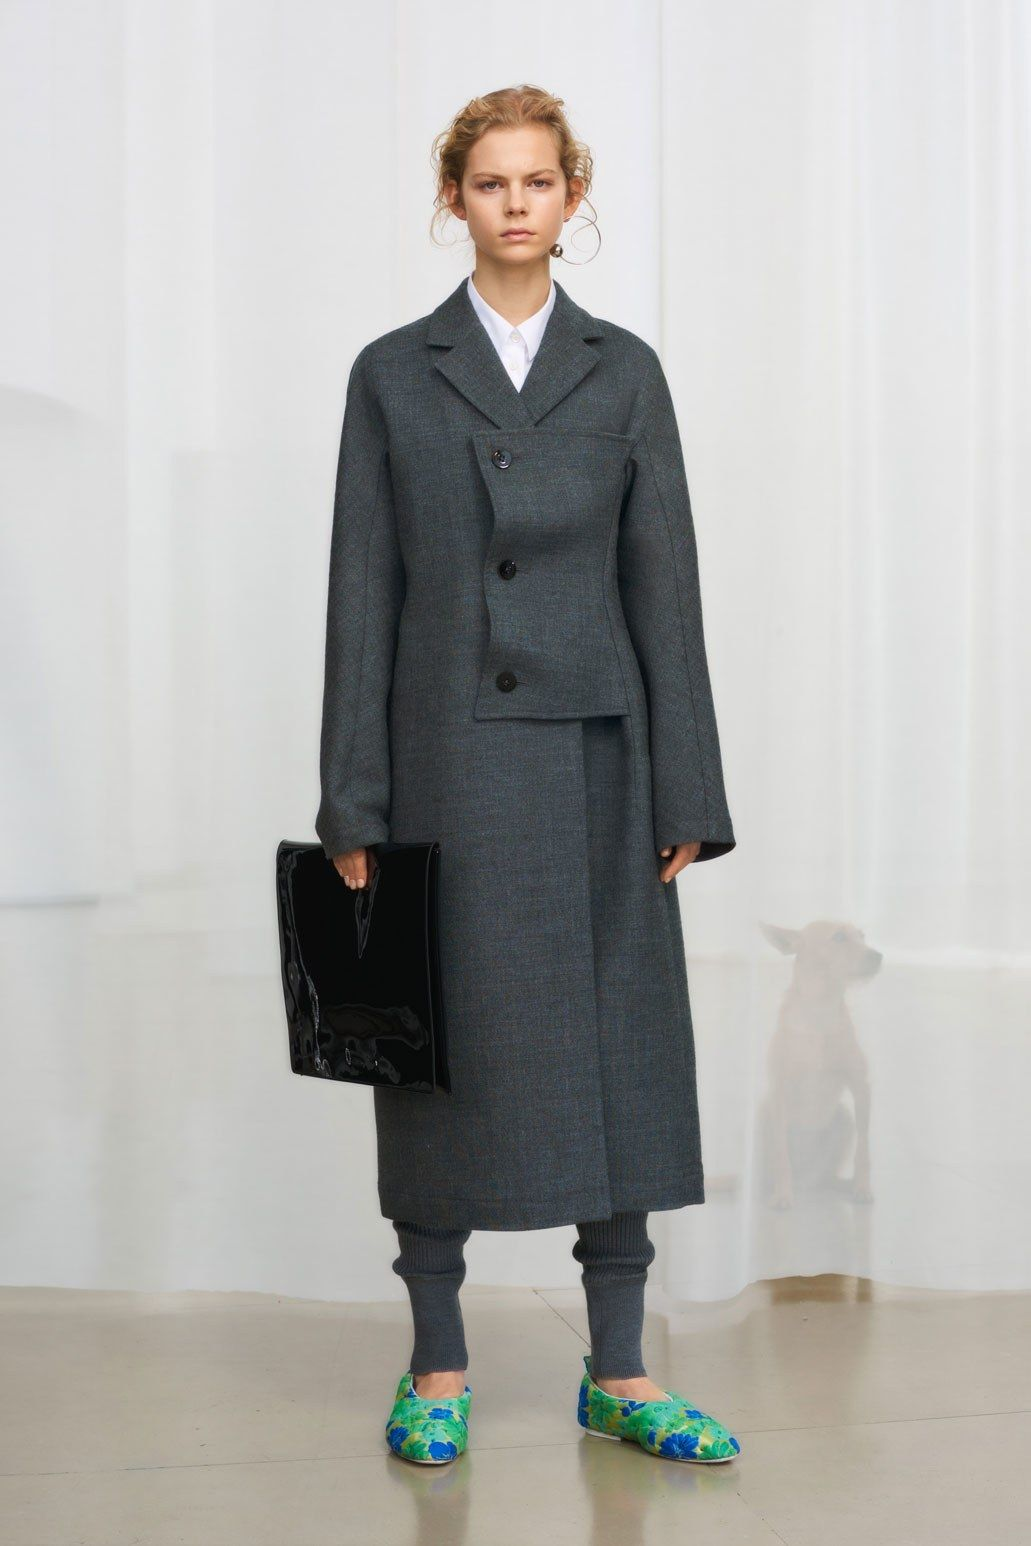 Fashion style Jil fall sander runway for woman